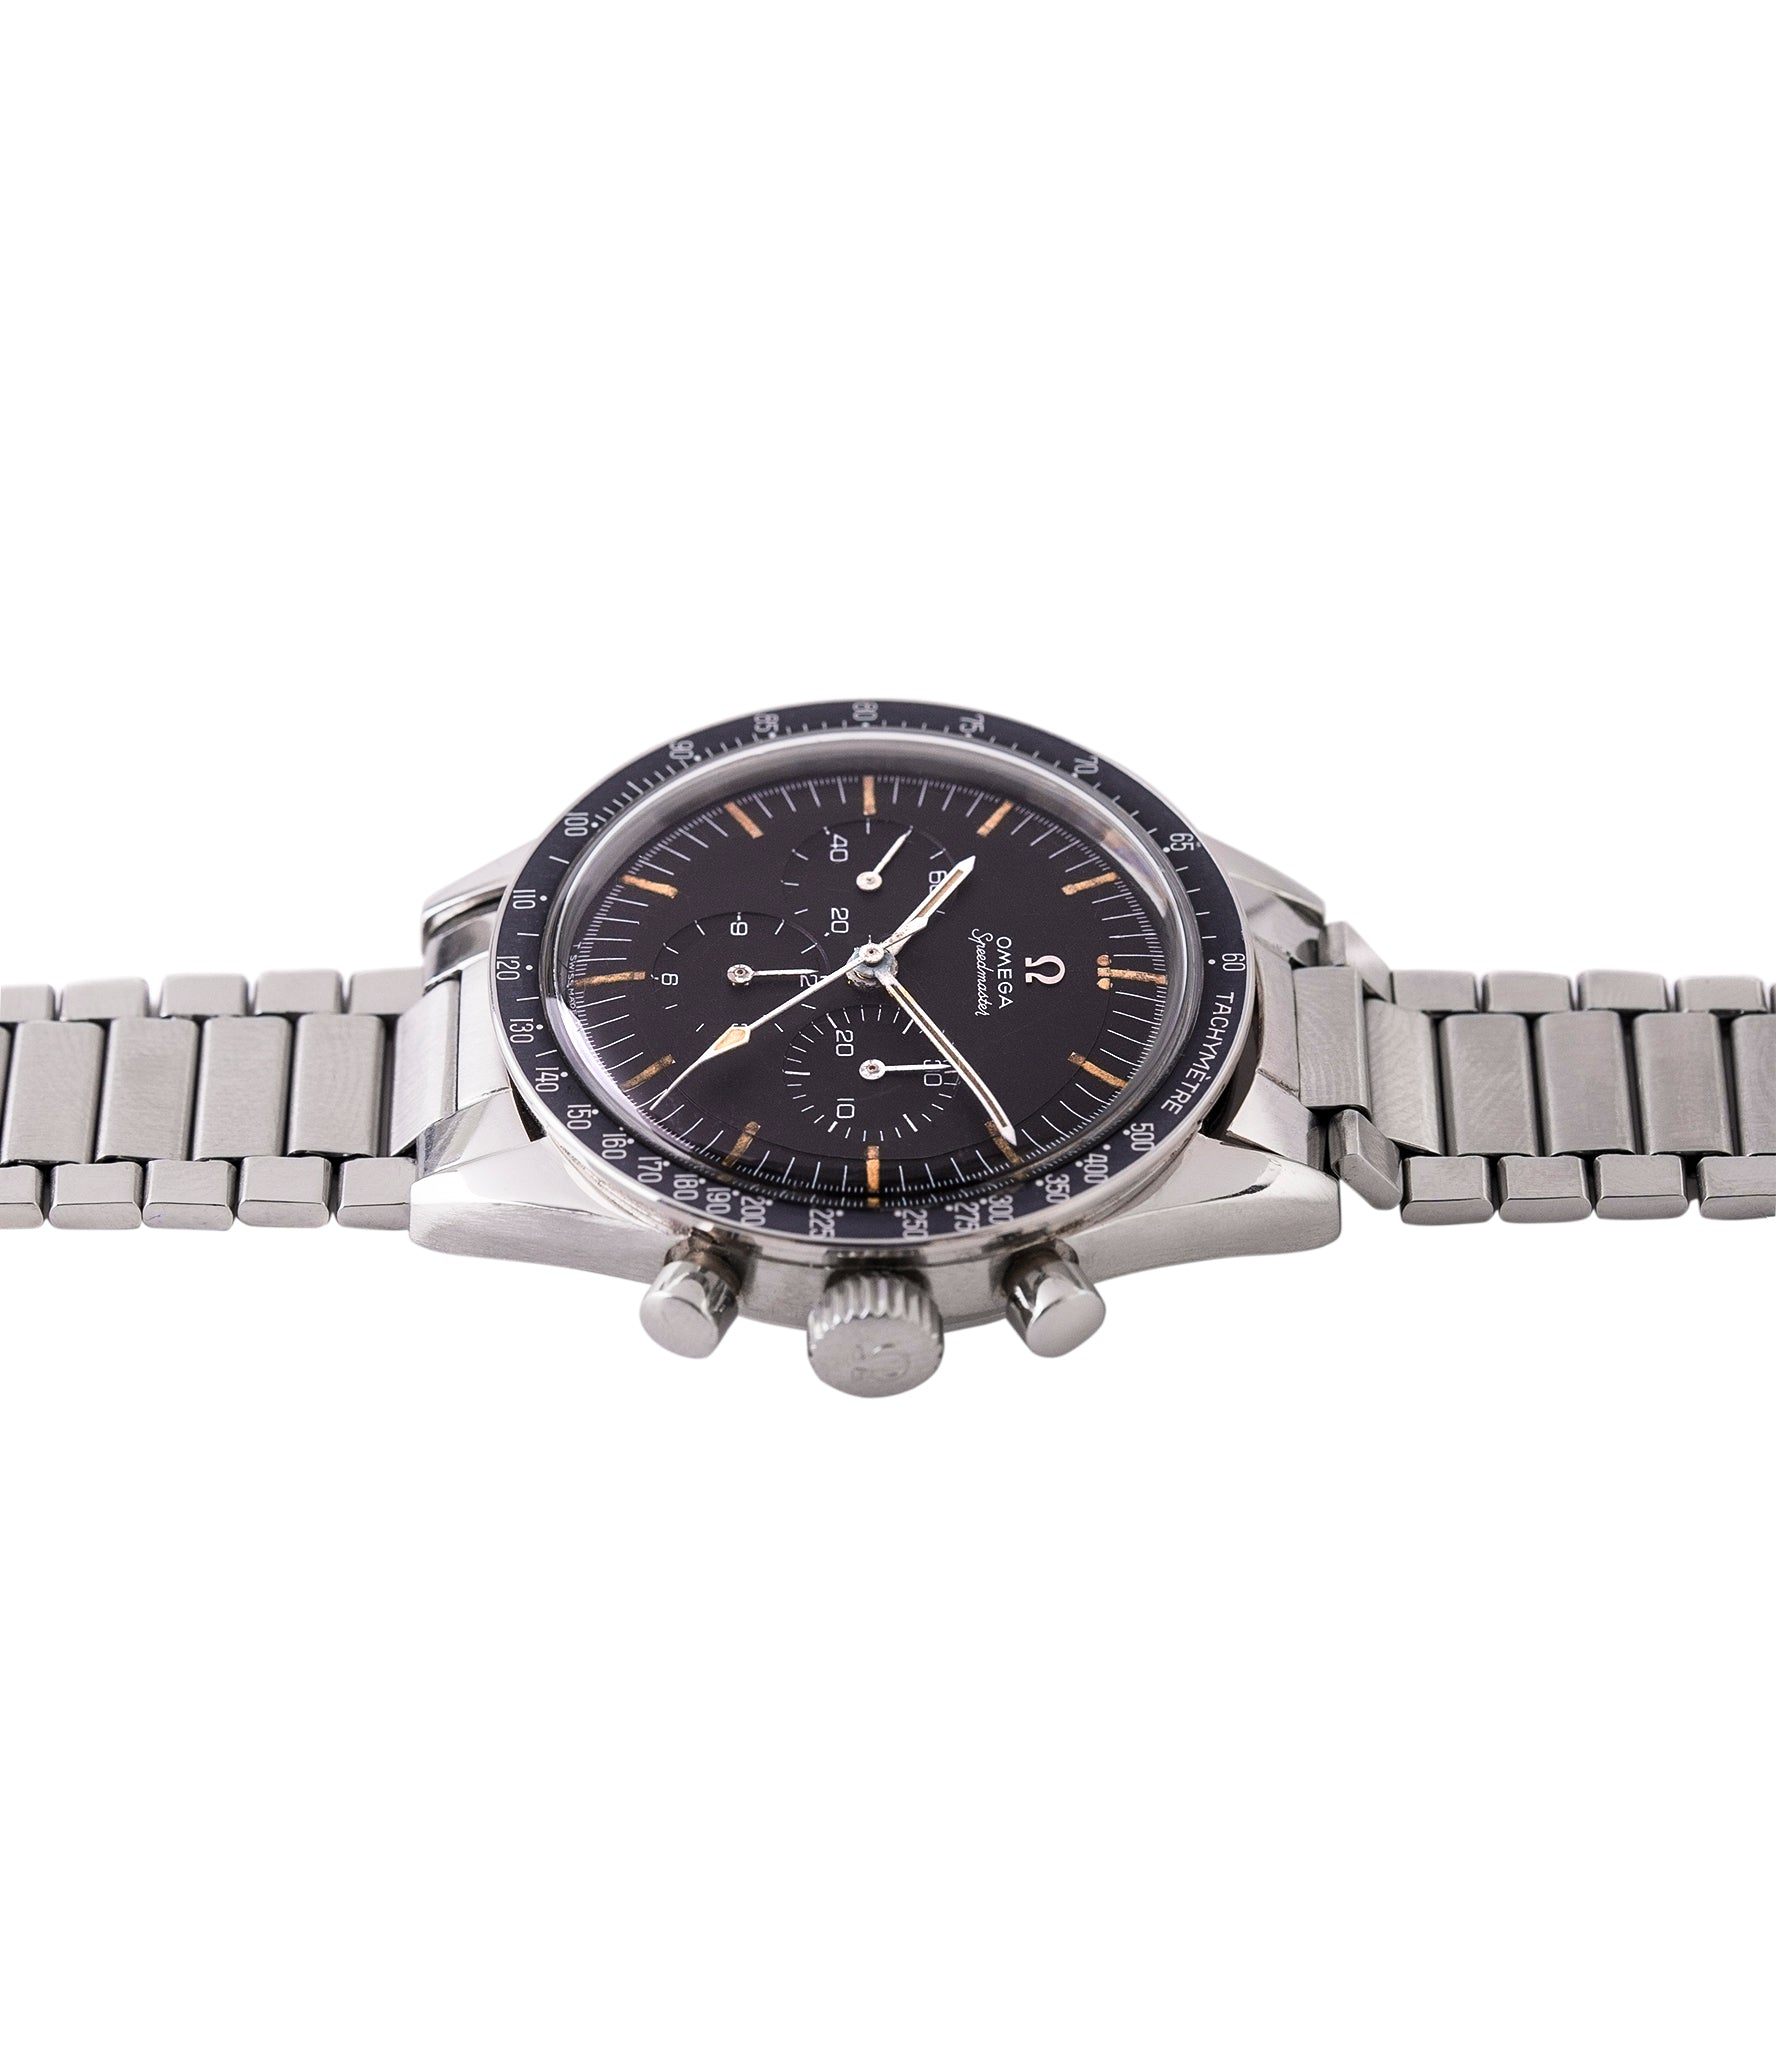 steel Omega Speedmaster Pre-Professional Ed White 105003 steel vintage chronograph 7912 flat-link bracelet for sale online at A Collected Man UK specialist of rare vintage watches